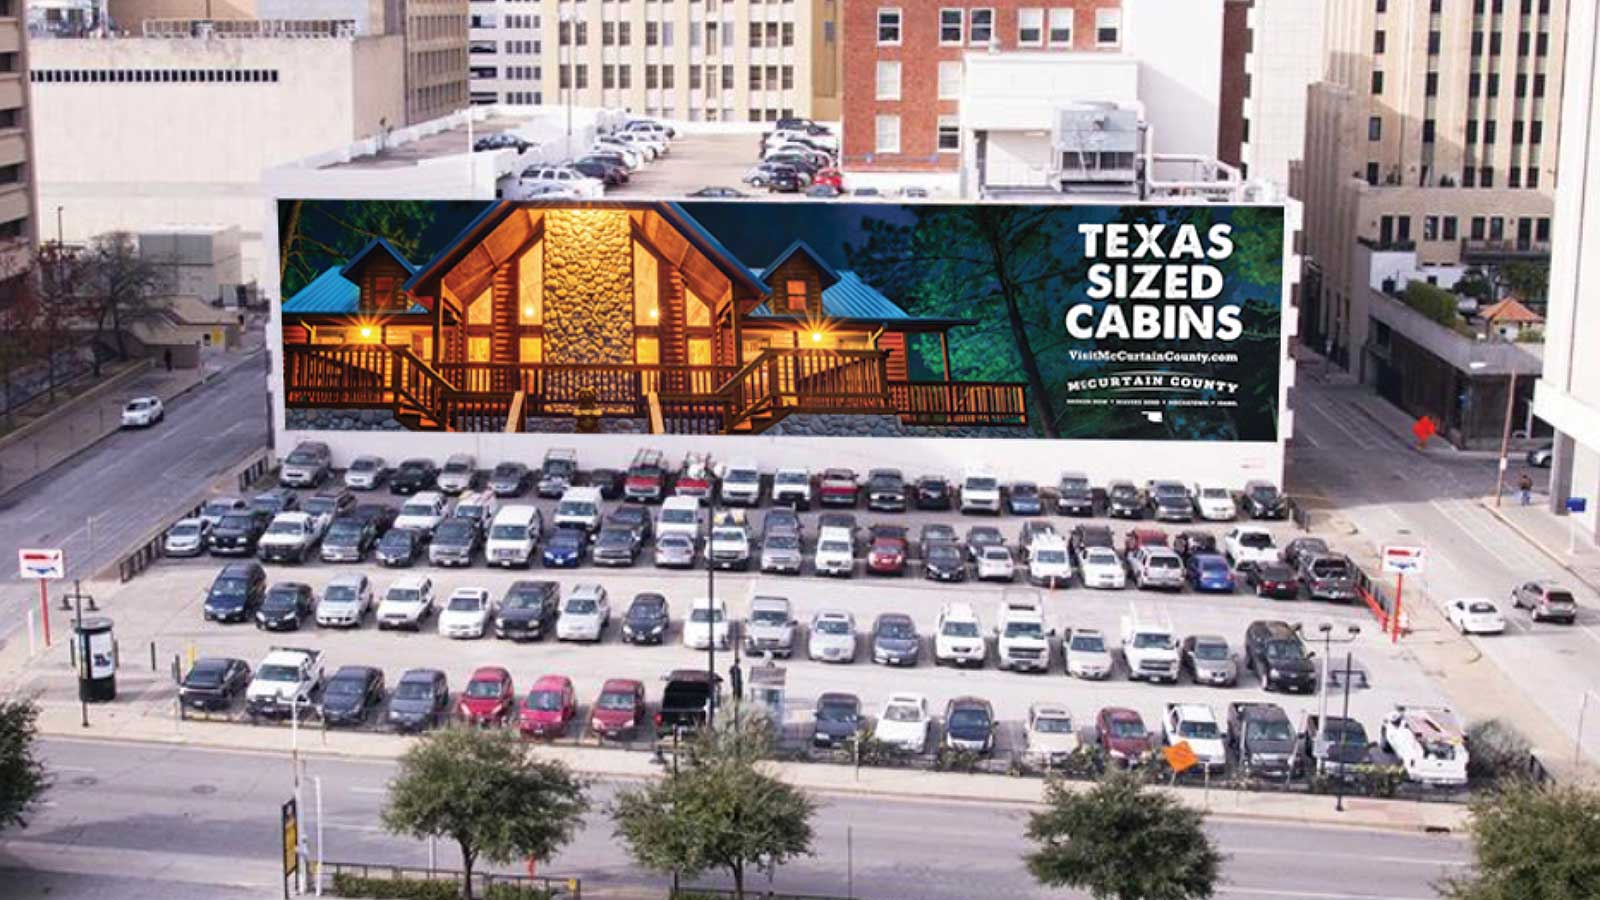 Award-winning, gigantic McCurtain County Tourism Authority cabin wallscape in Dallas, Texas